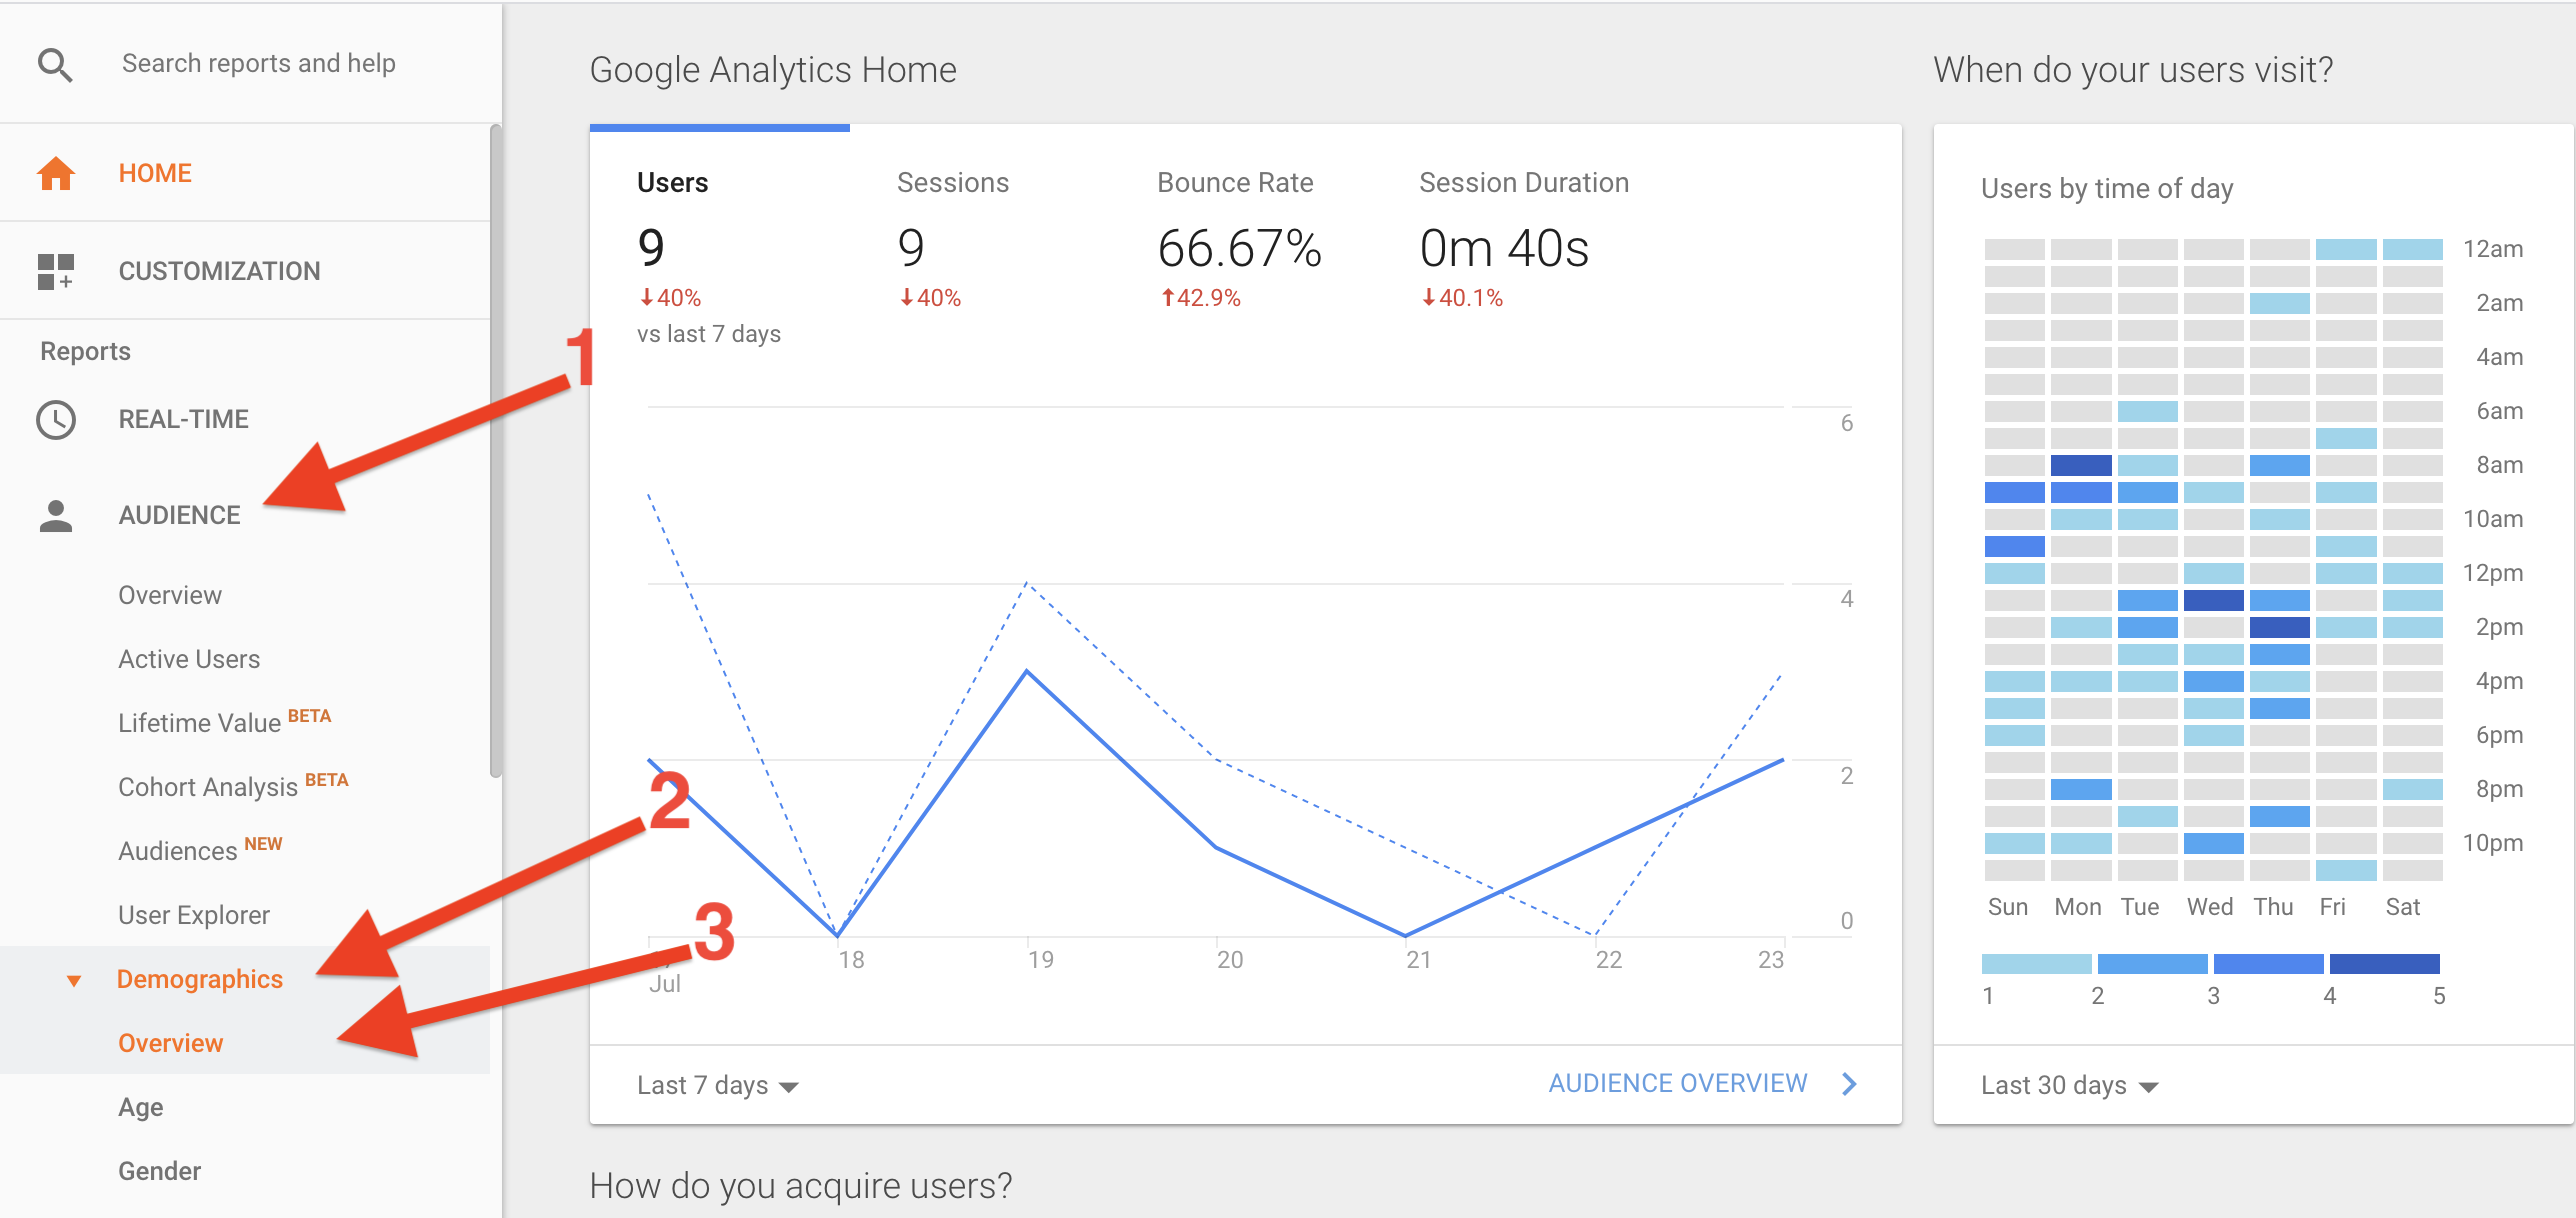 Demographics overview in Google Analytics